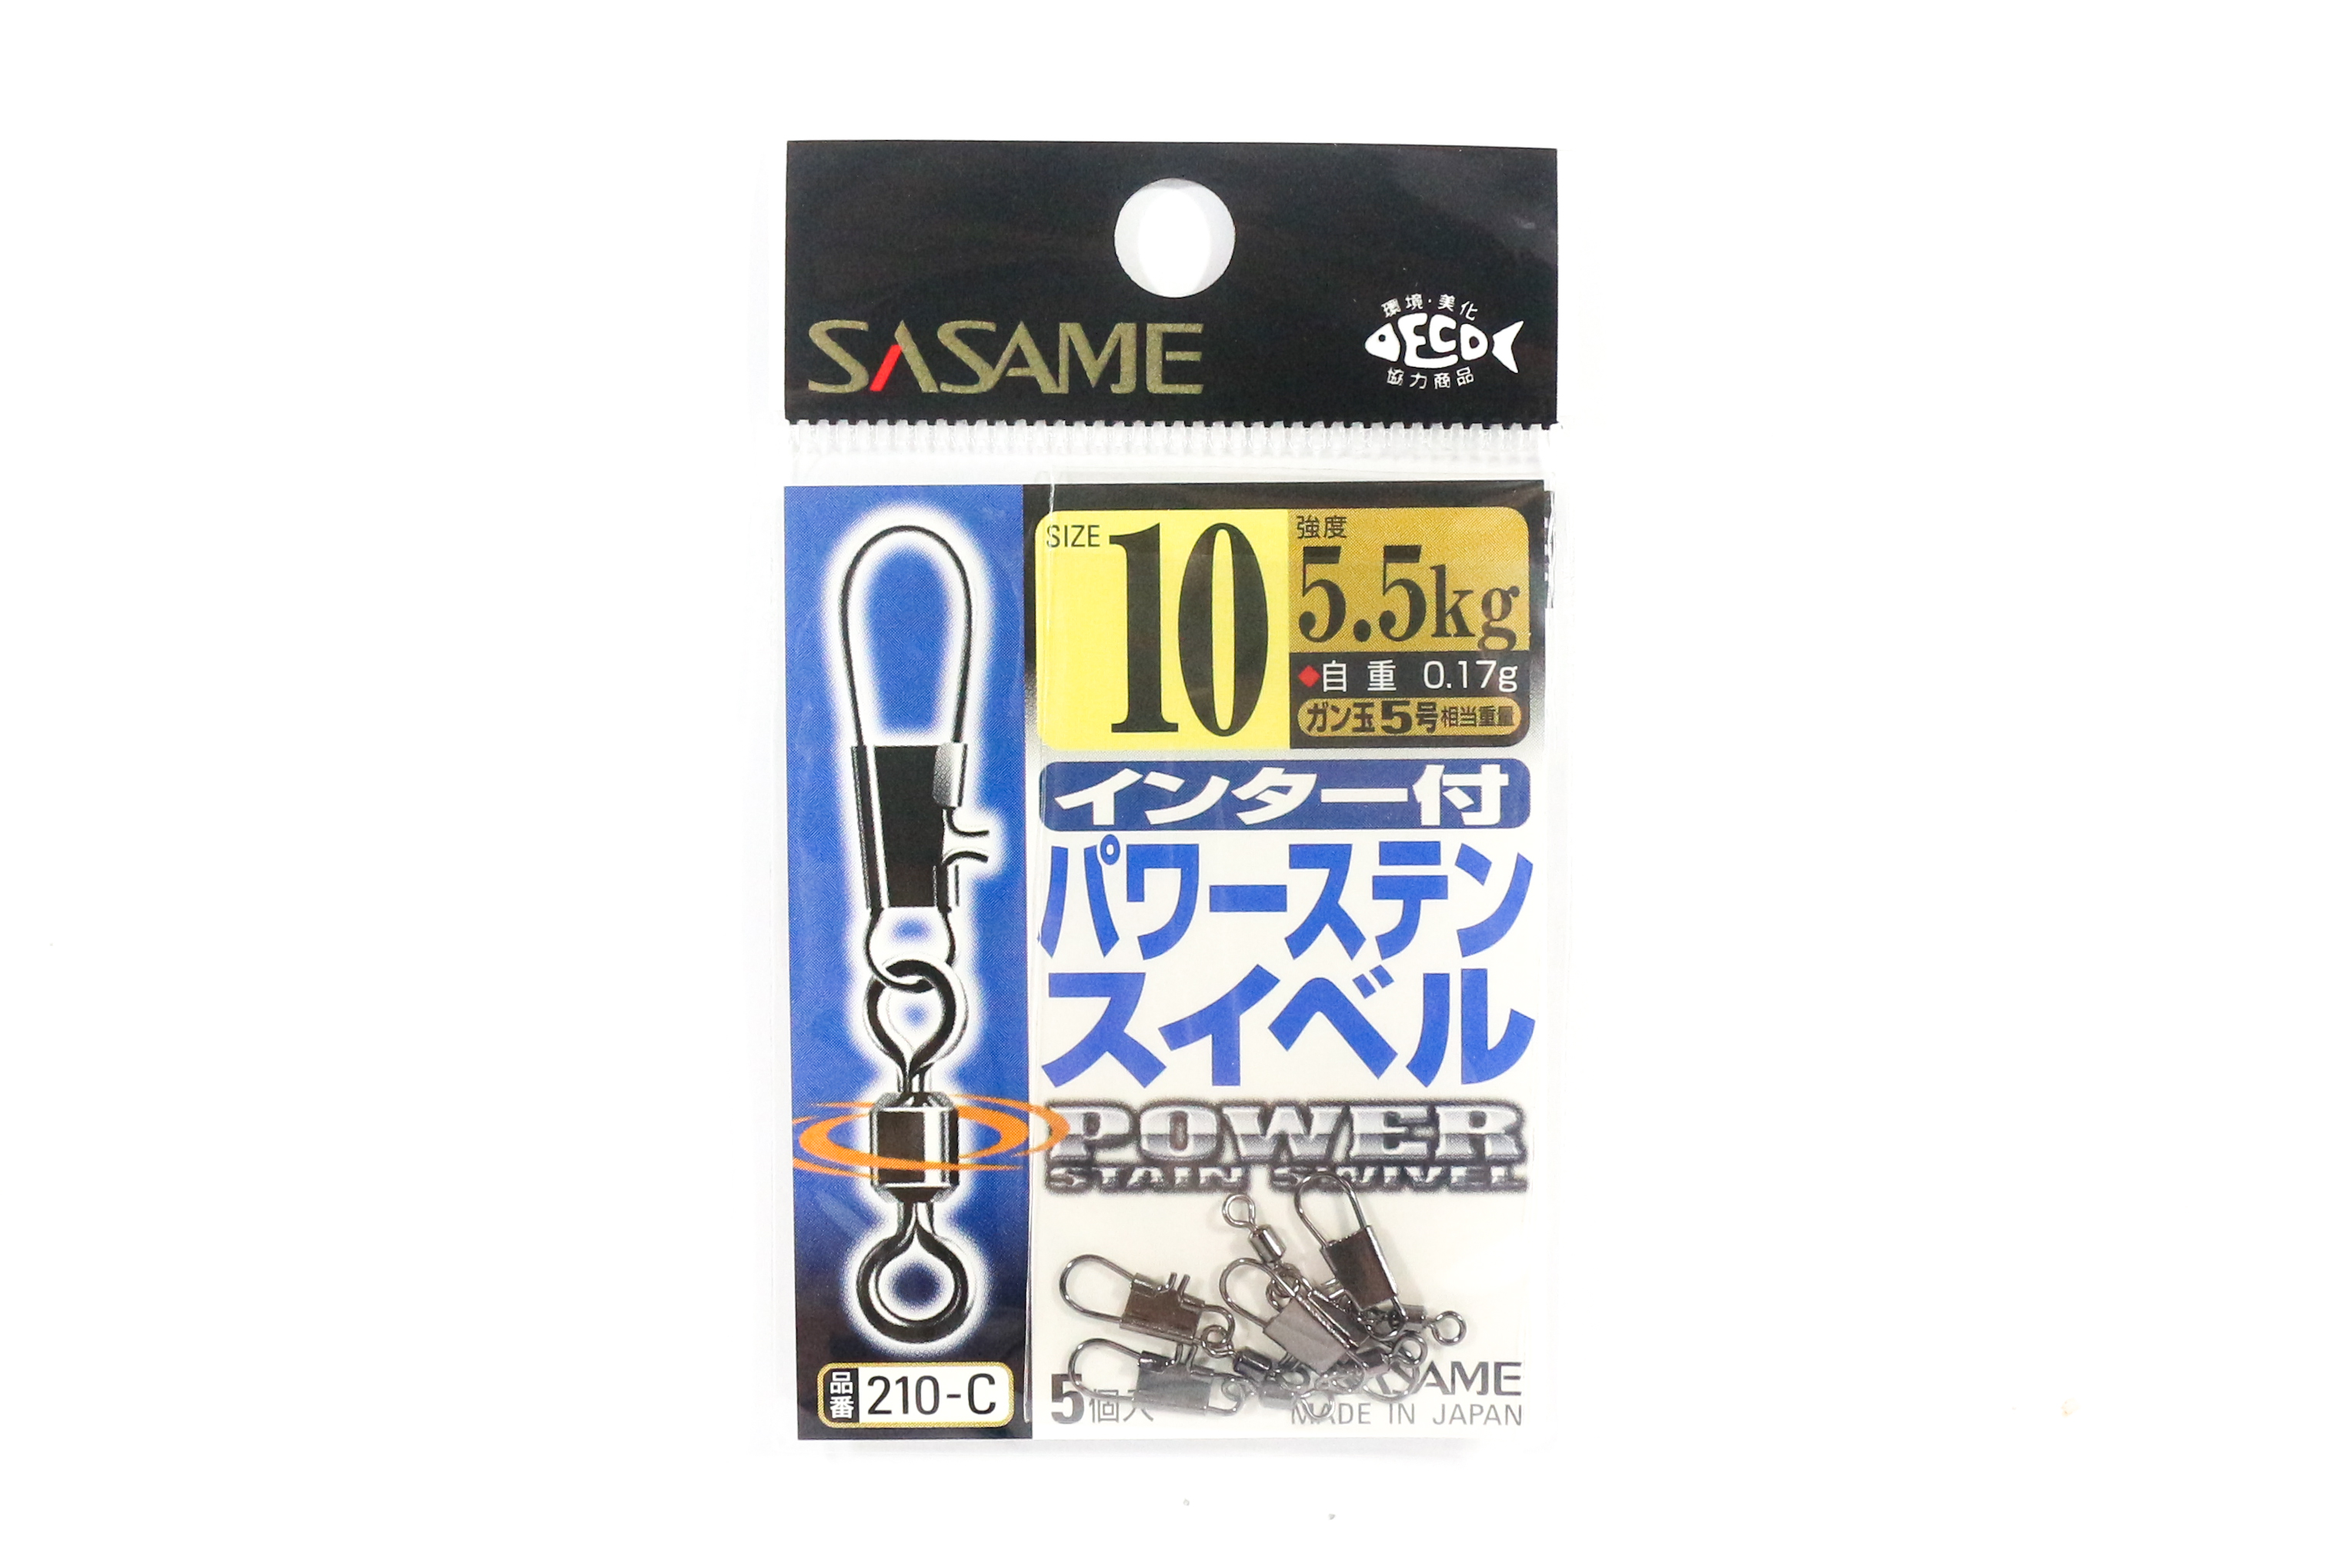 Sasame 210-C Power Stain Snap Swivel Smooth Spin Black Size 10 (1140)